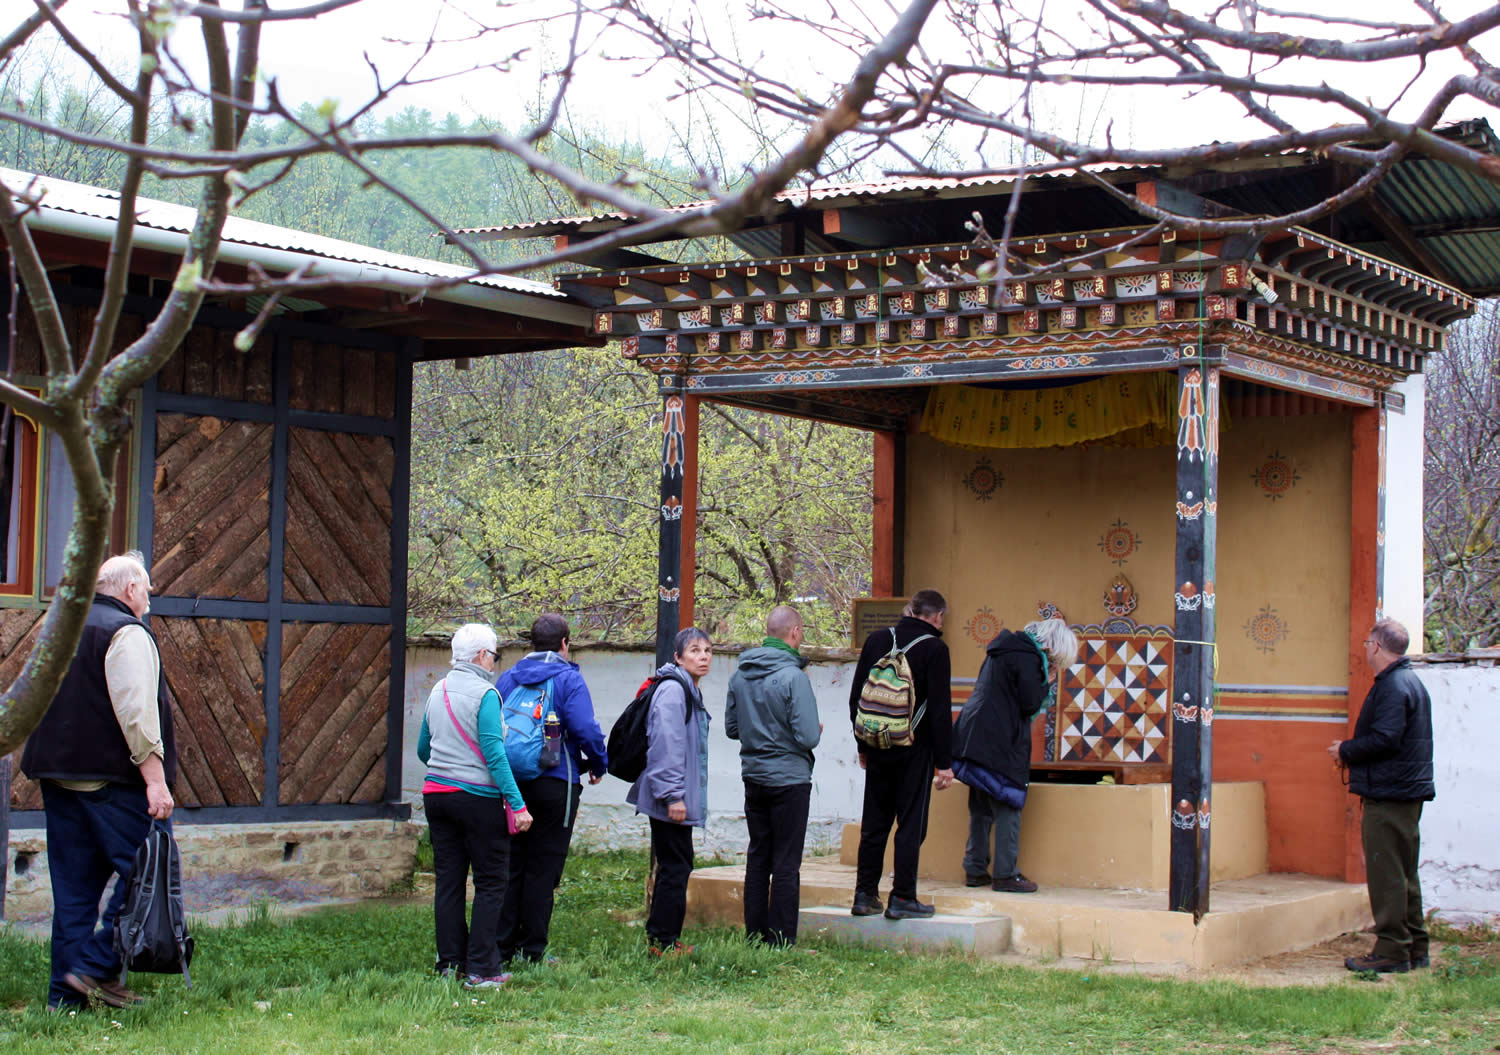 The throne, adjacent to his home, from which Dilgo Khyentse Rinpoche gave teachings, Paro, Bhutan.